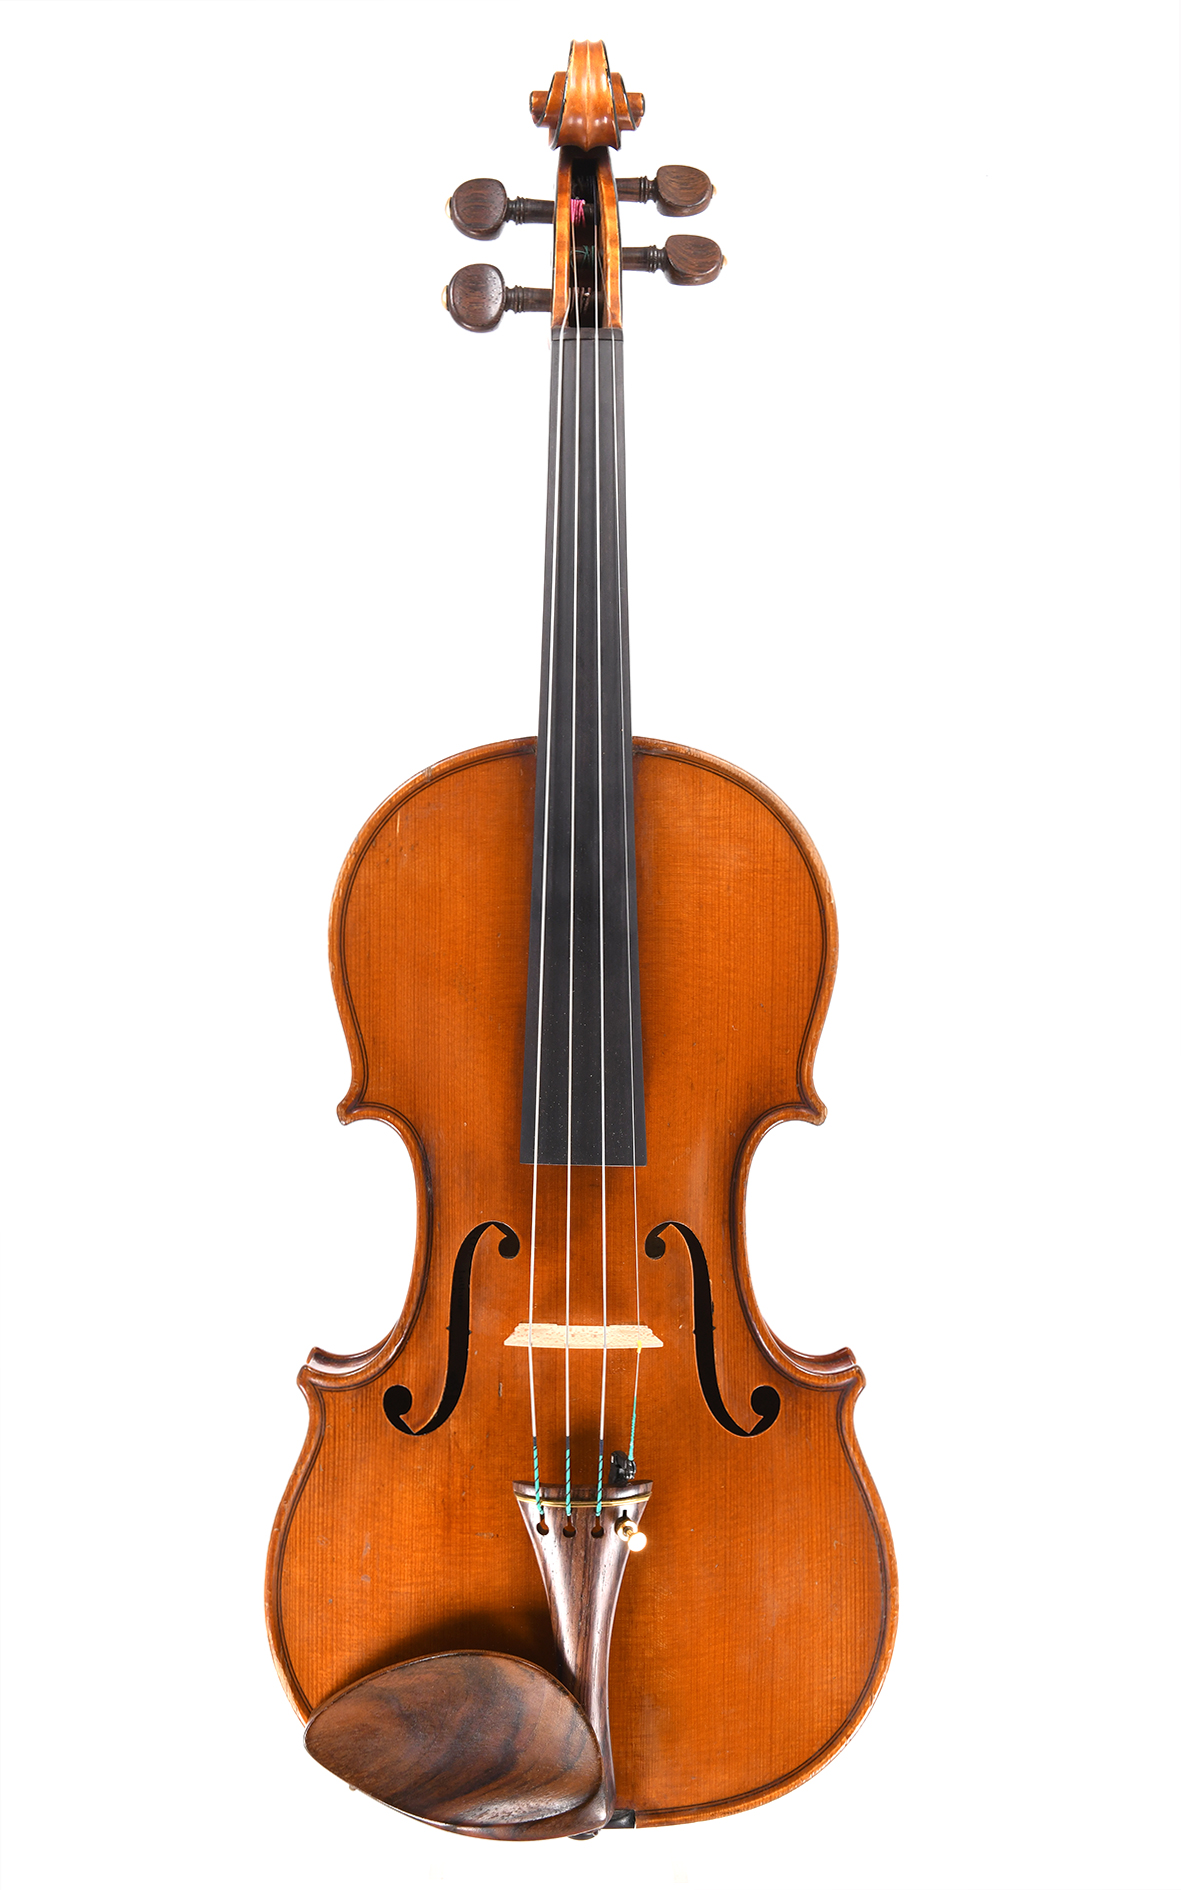 Fine French violin by Leon Bernardel